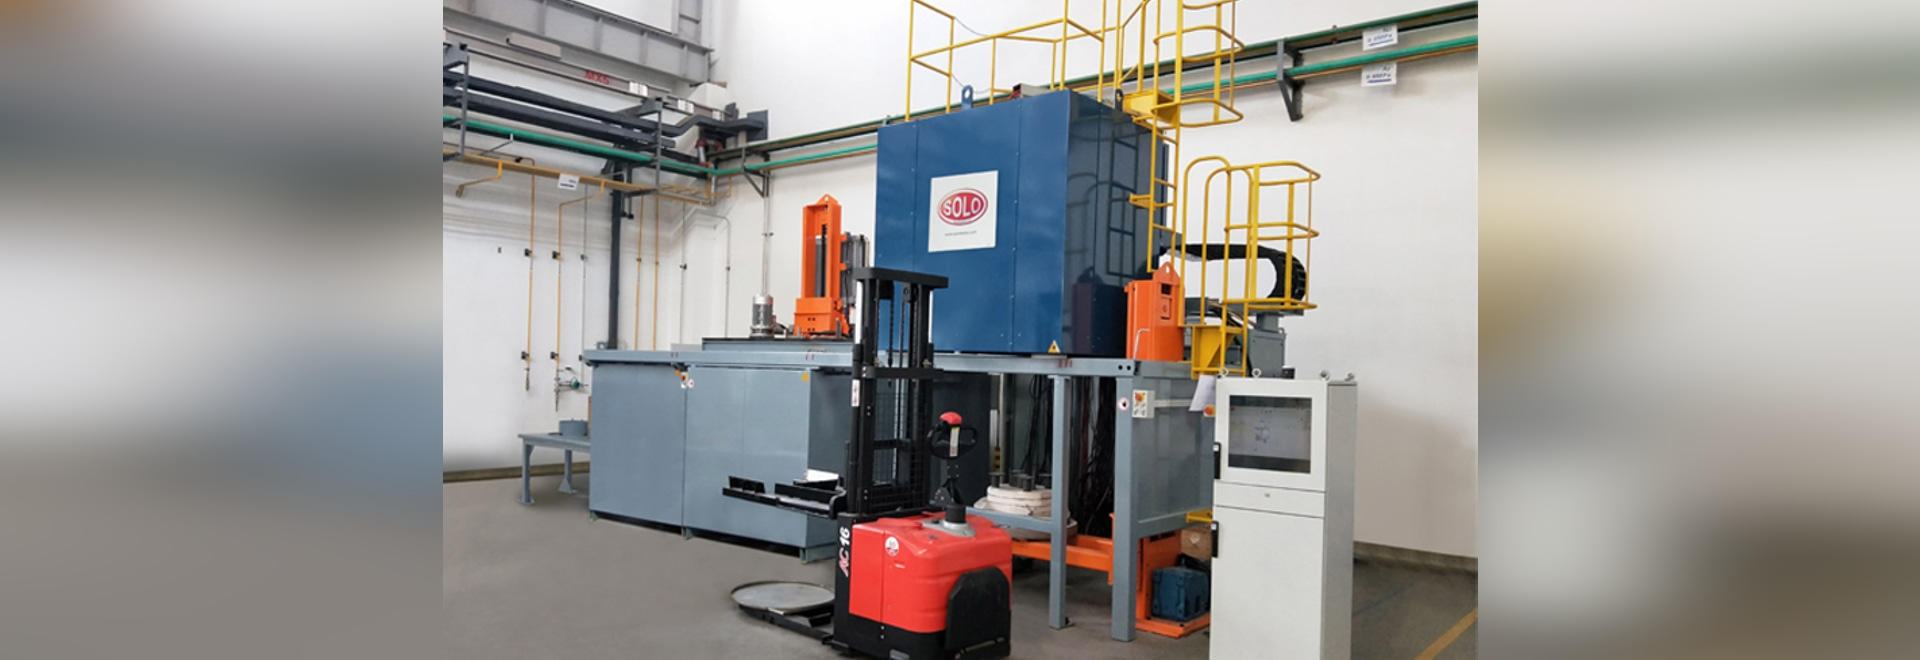 SOLO Swiss Atmosphere furnace for hardening of aero engine parts (Turbo), Russia